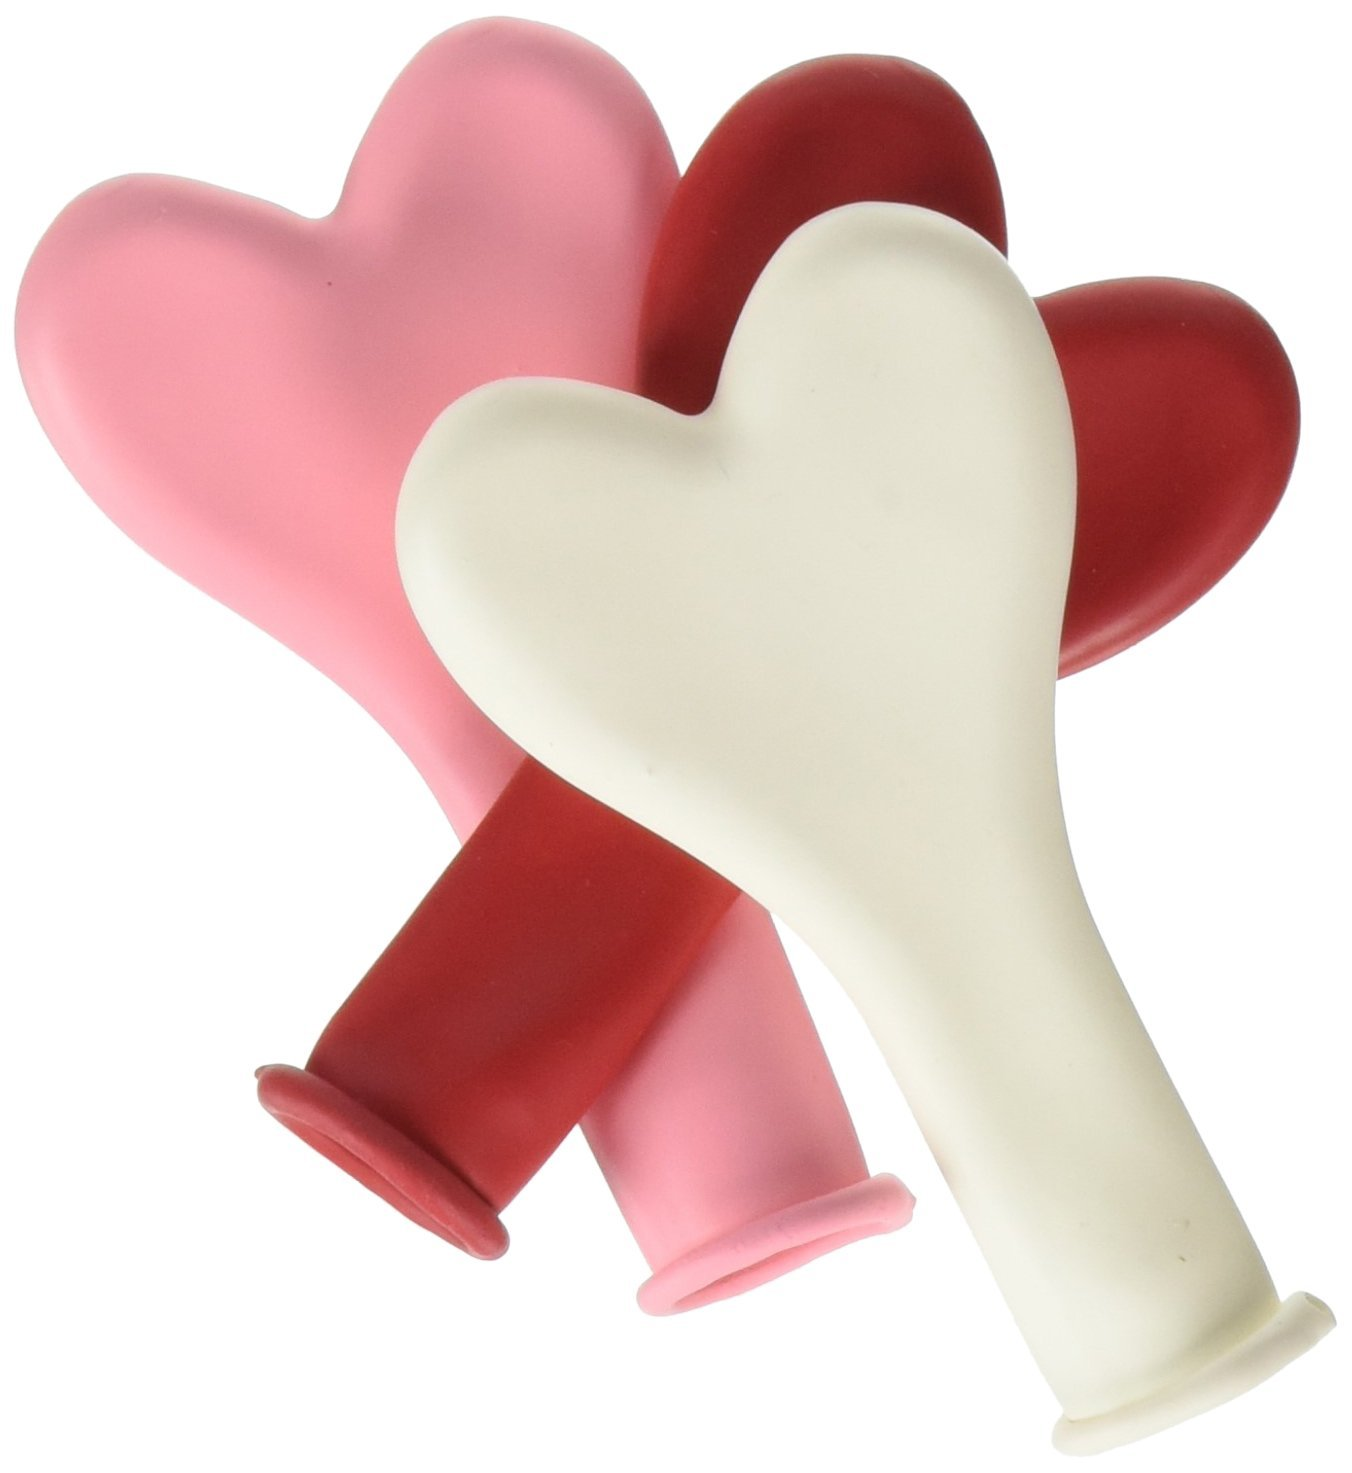 """Sweetheart Heart Shaped Latex Balloon, 6"""", Made by Qu latex - The Choice of Professionals By PIONEER BALLOON COMPANY"""